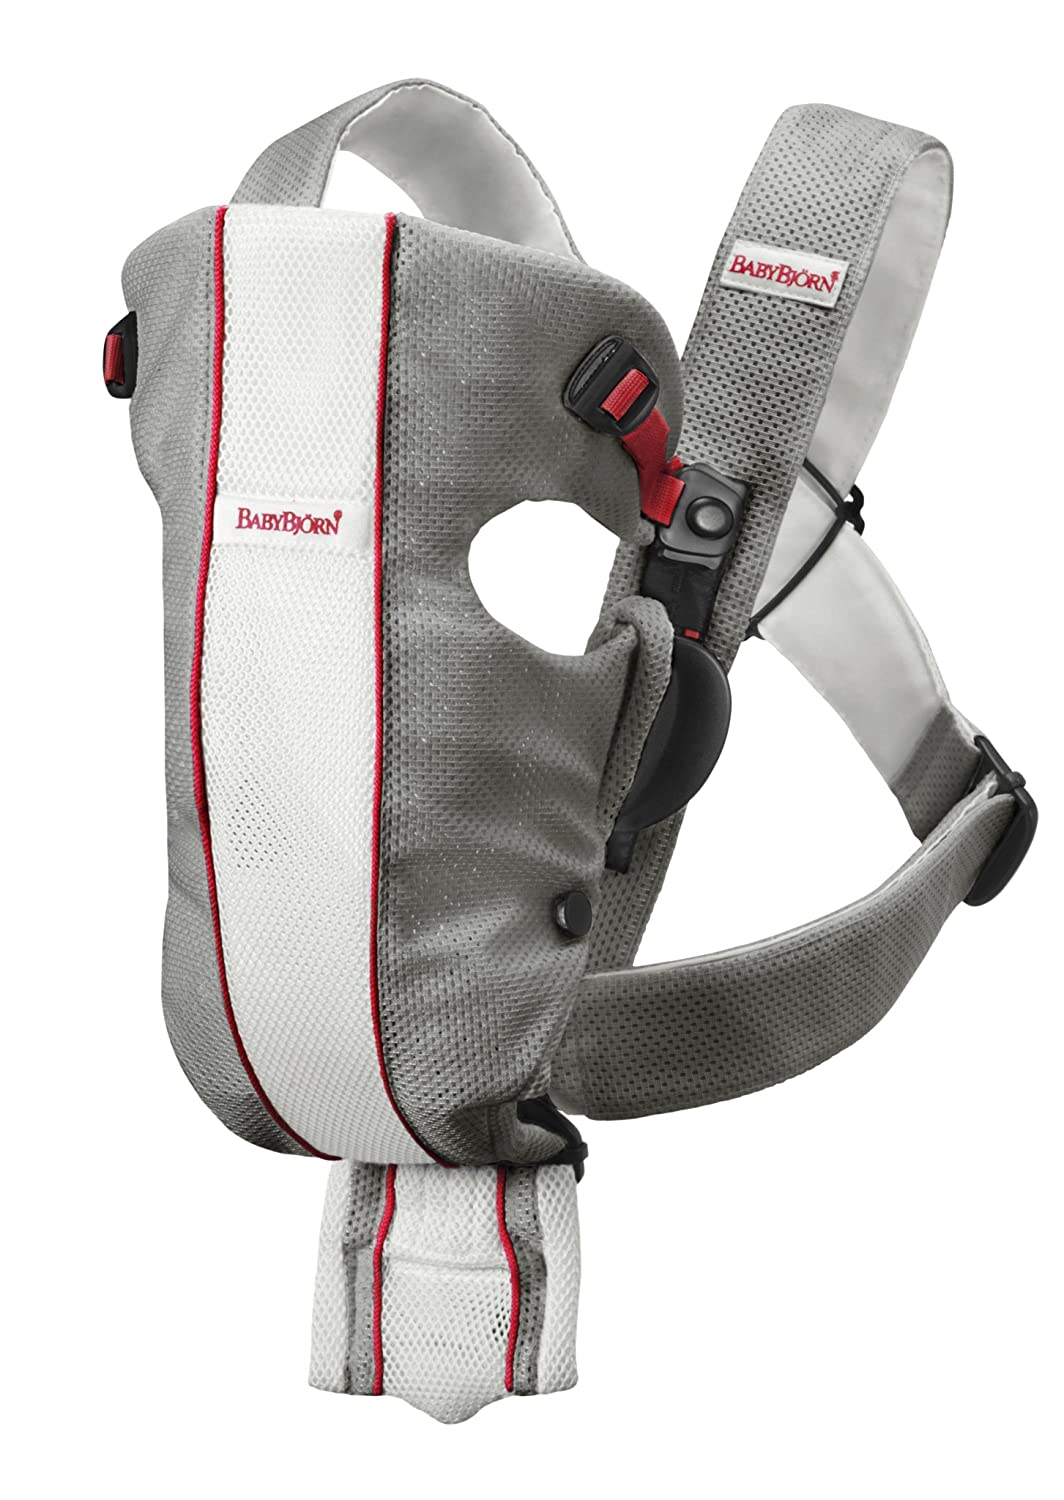 Infantino Baby Carrier Review Its Baby Time